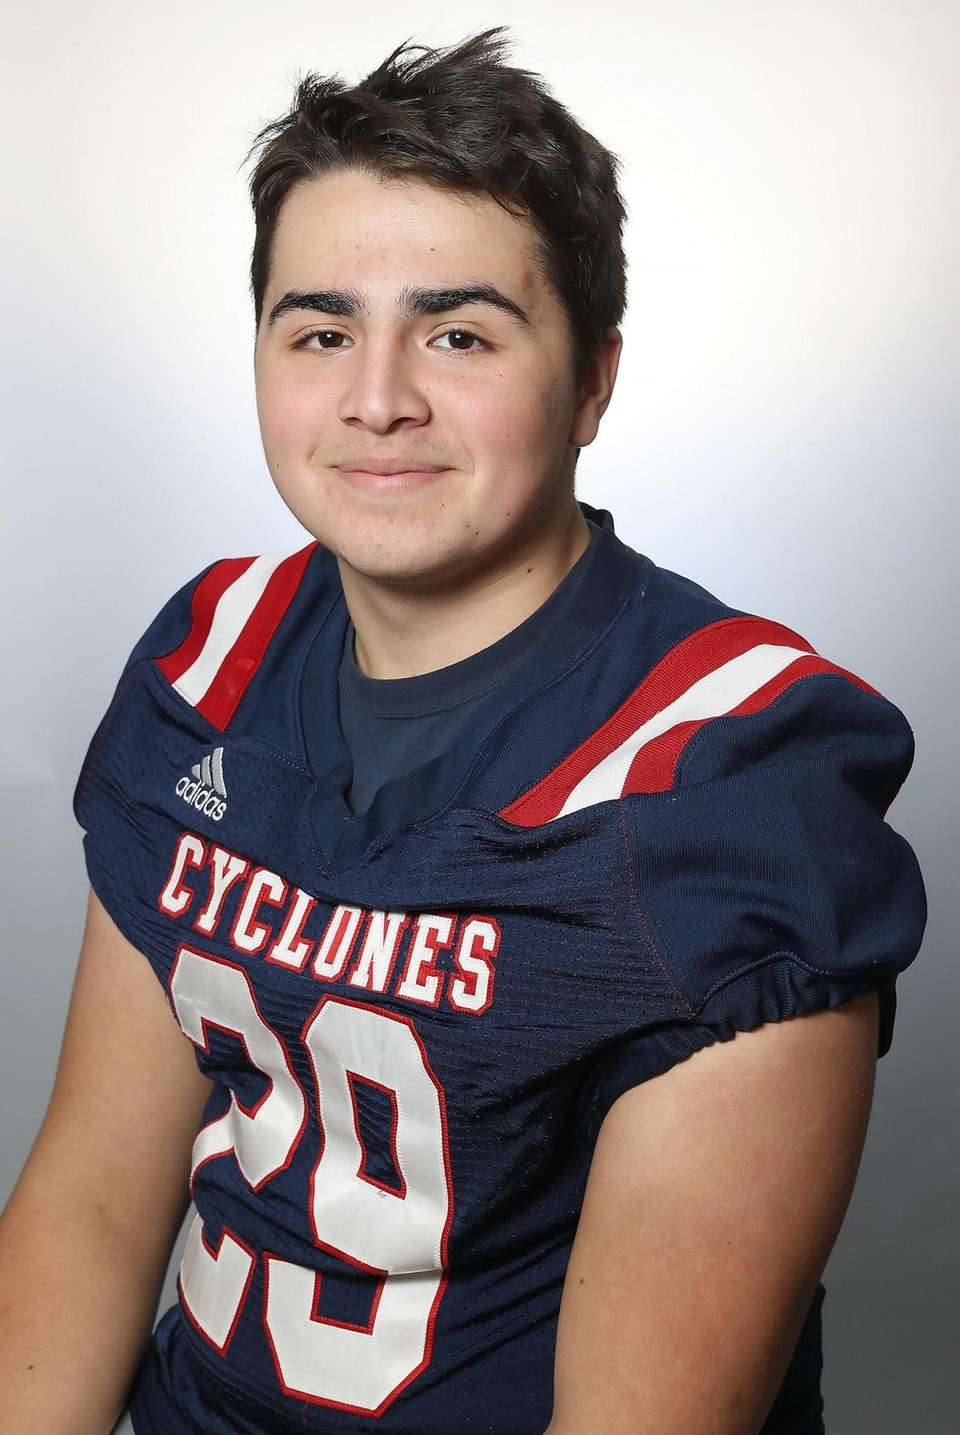 The 2019 Newsday Fall All-Long Island football player